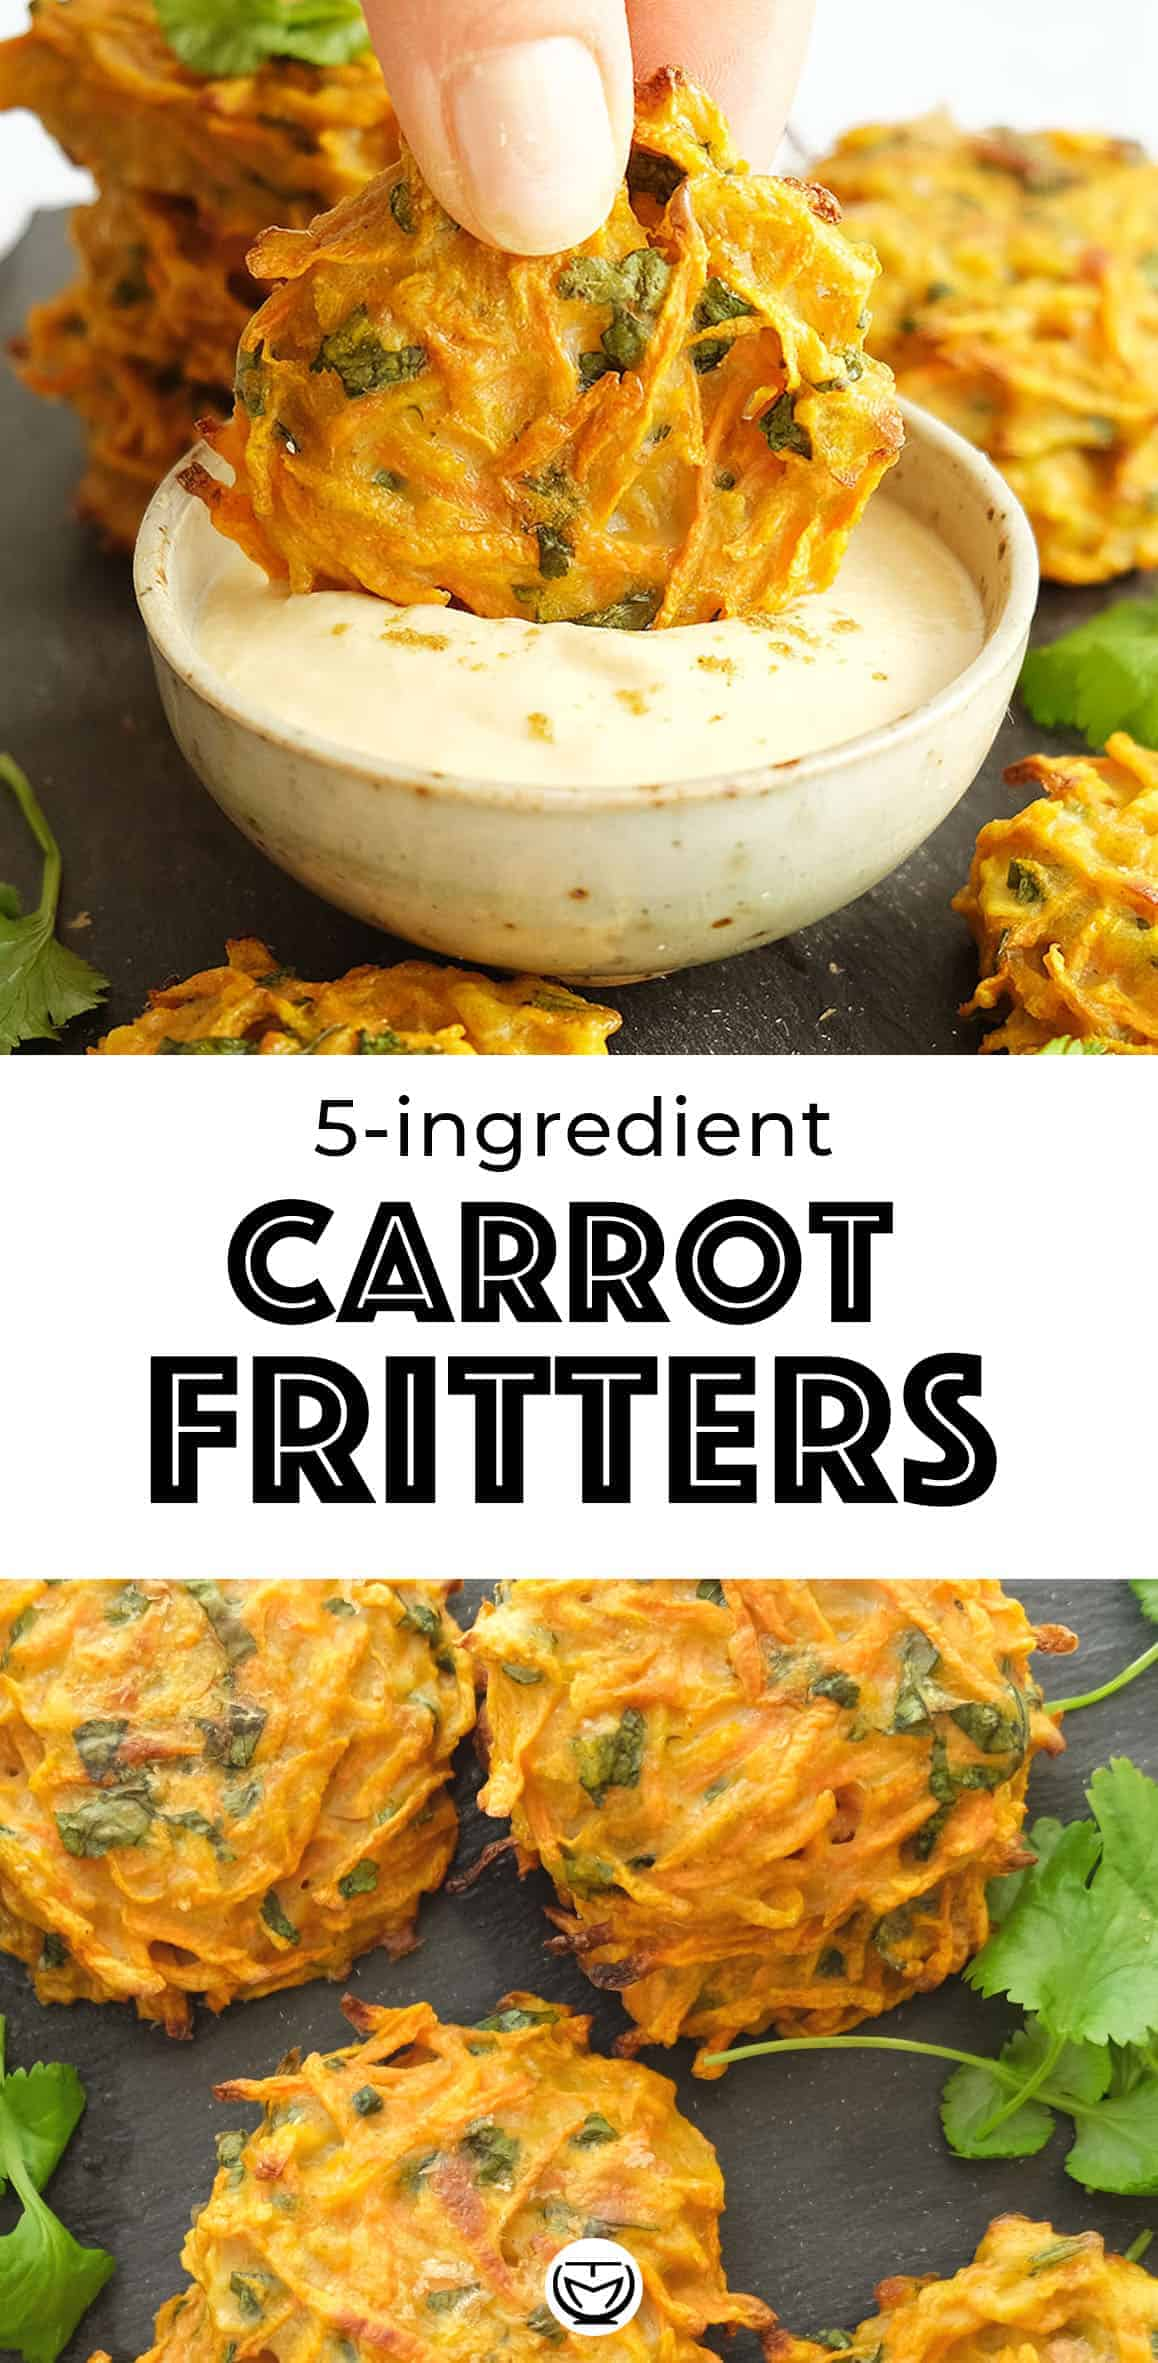 Vegetable fritters, especially carrot fritters, are a staple for my family. They are so simple to put together: 5 inexpensive and healthy ingredients and 30 minutes of prep time. They make a light and kid-friendly meal and a tasty vegetarian appetizer! #carrotrecipes #fritters #appetizers